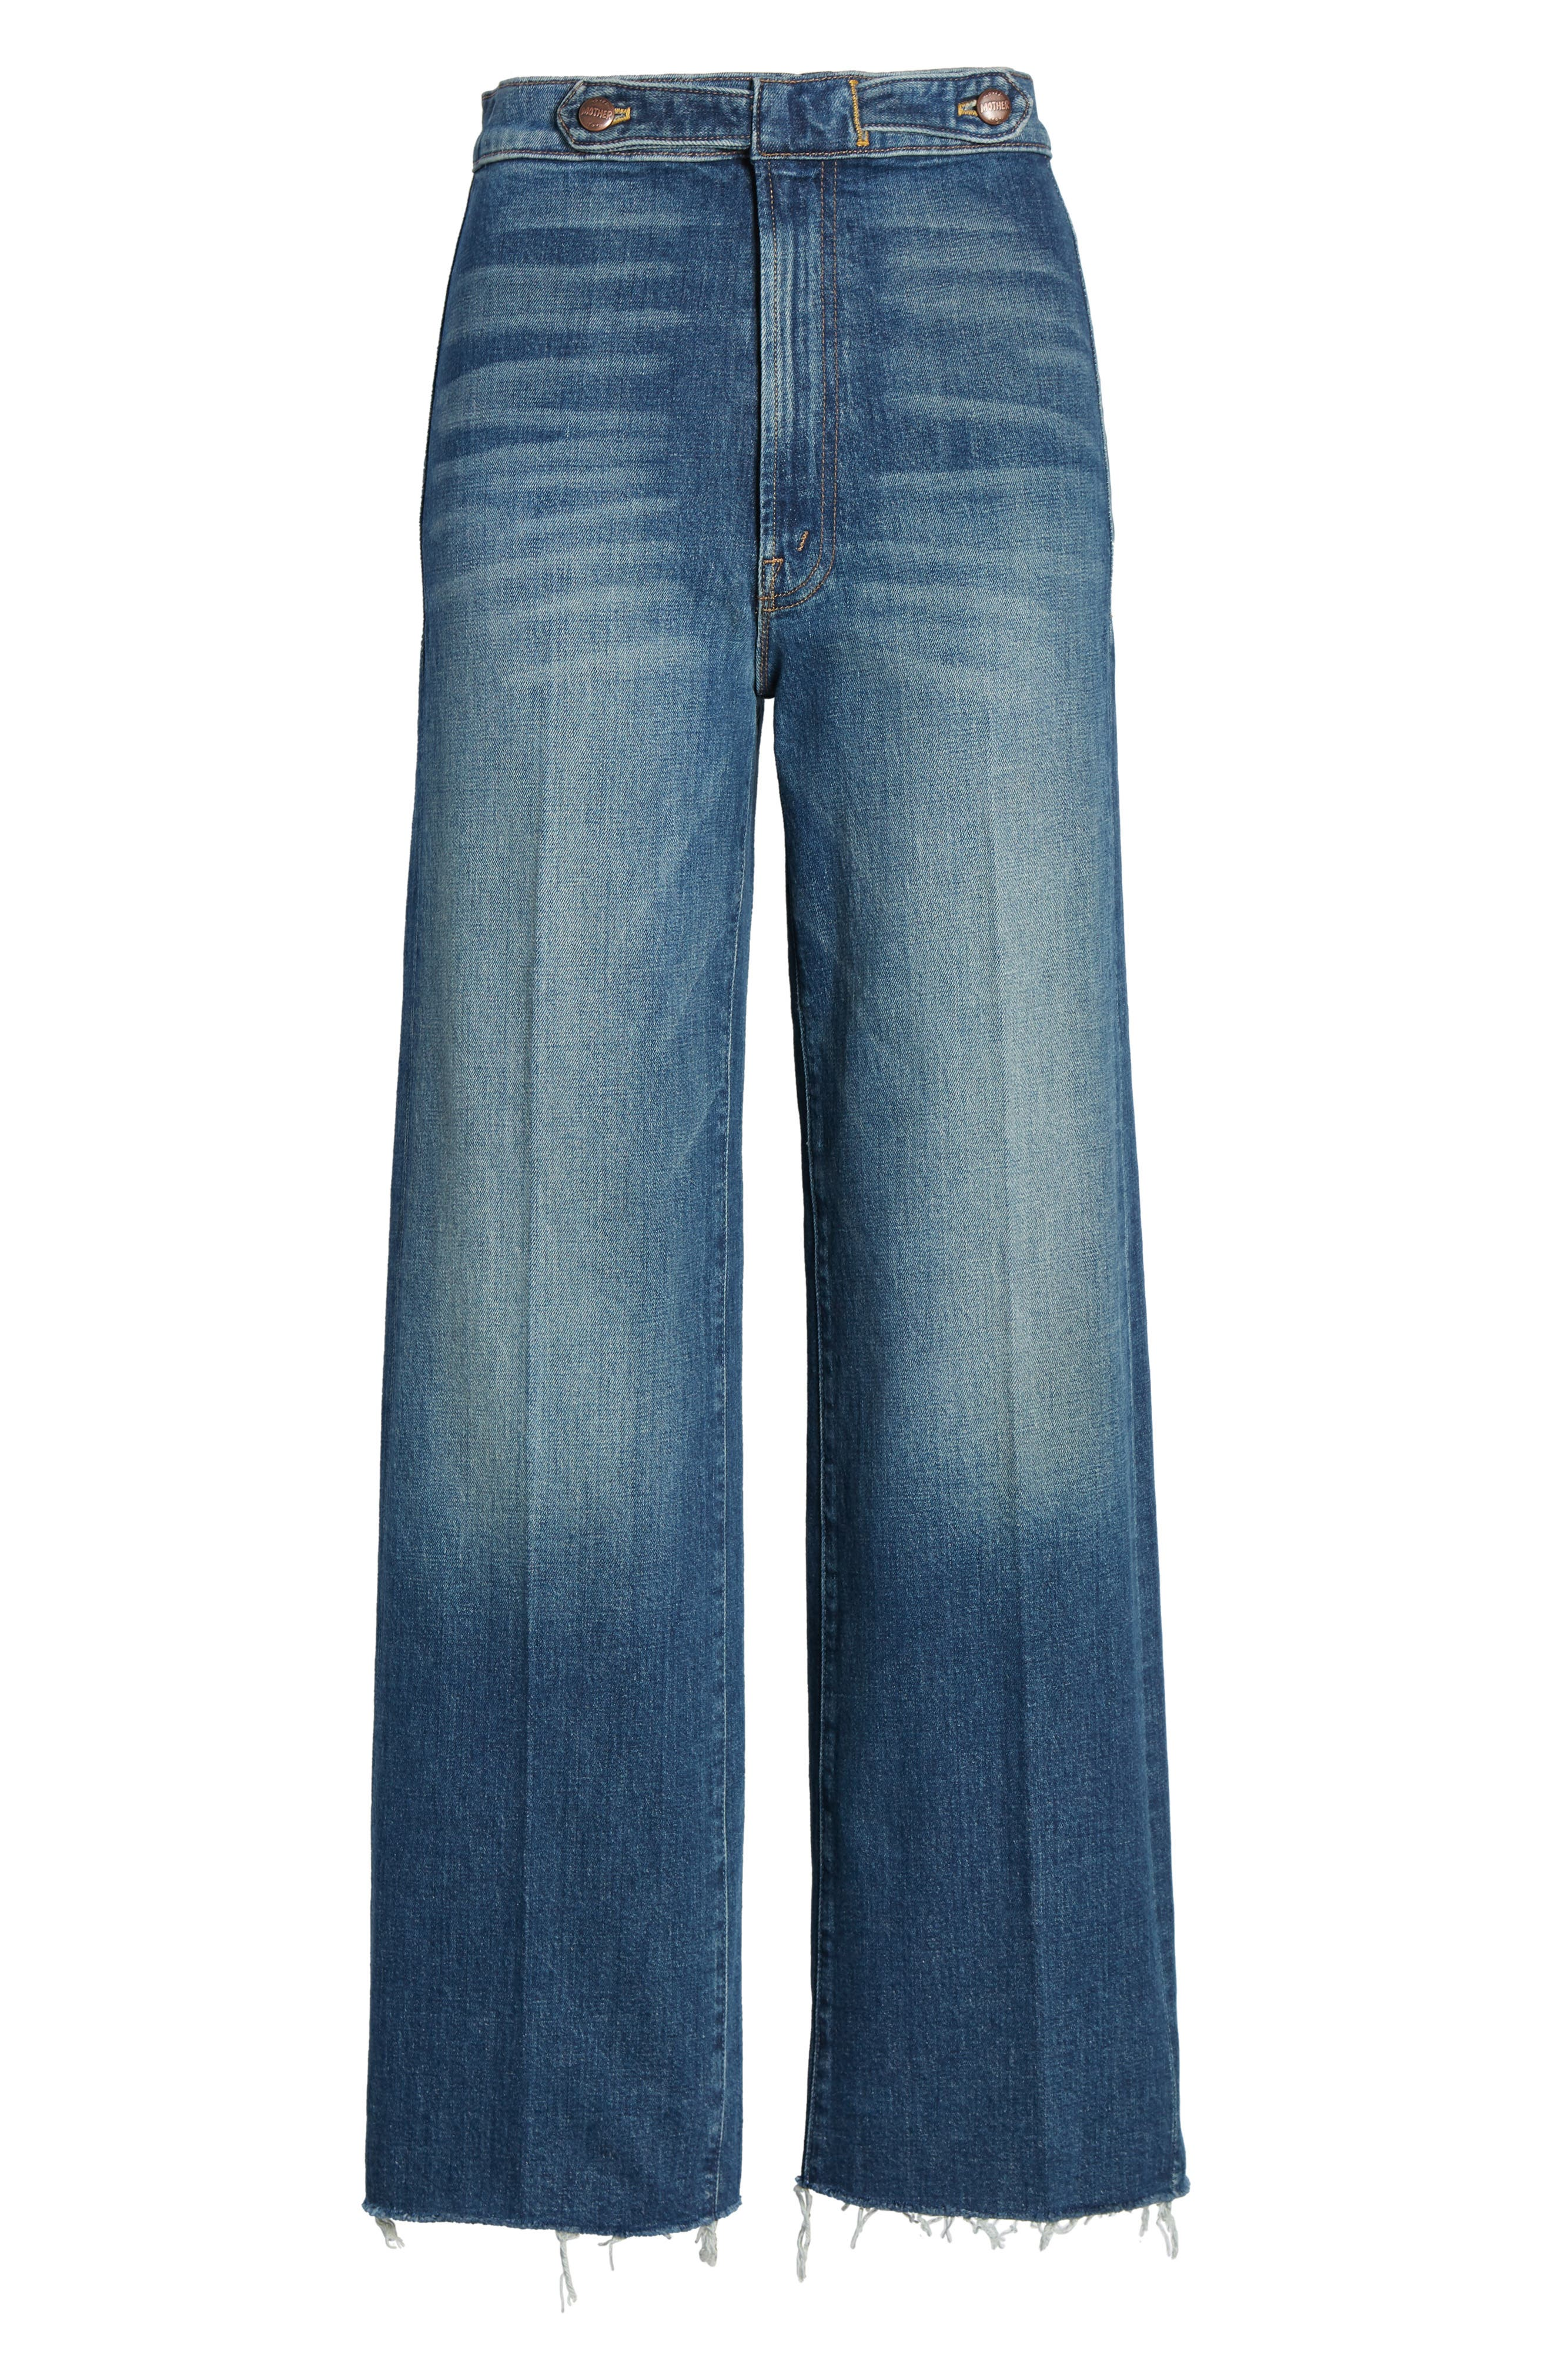 MOTHER, The Loop De Loop Frayed Wide Leg Jeans, Alternate thumbnail 5, color, JUST ONE SIP